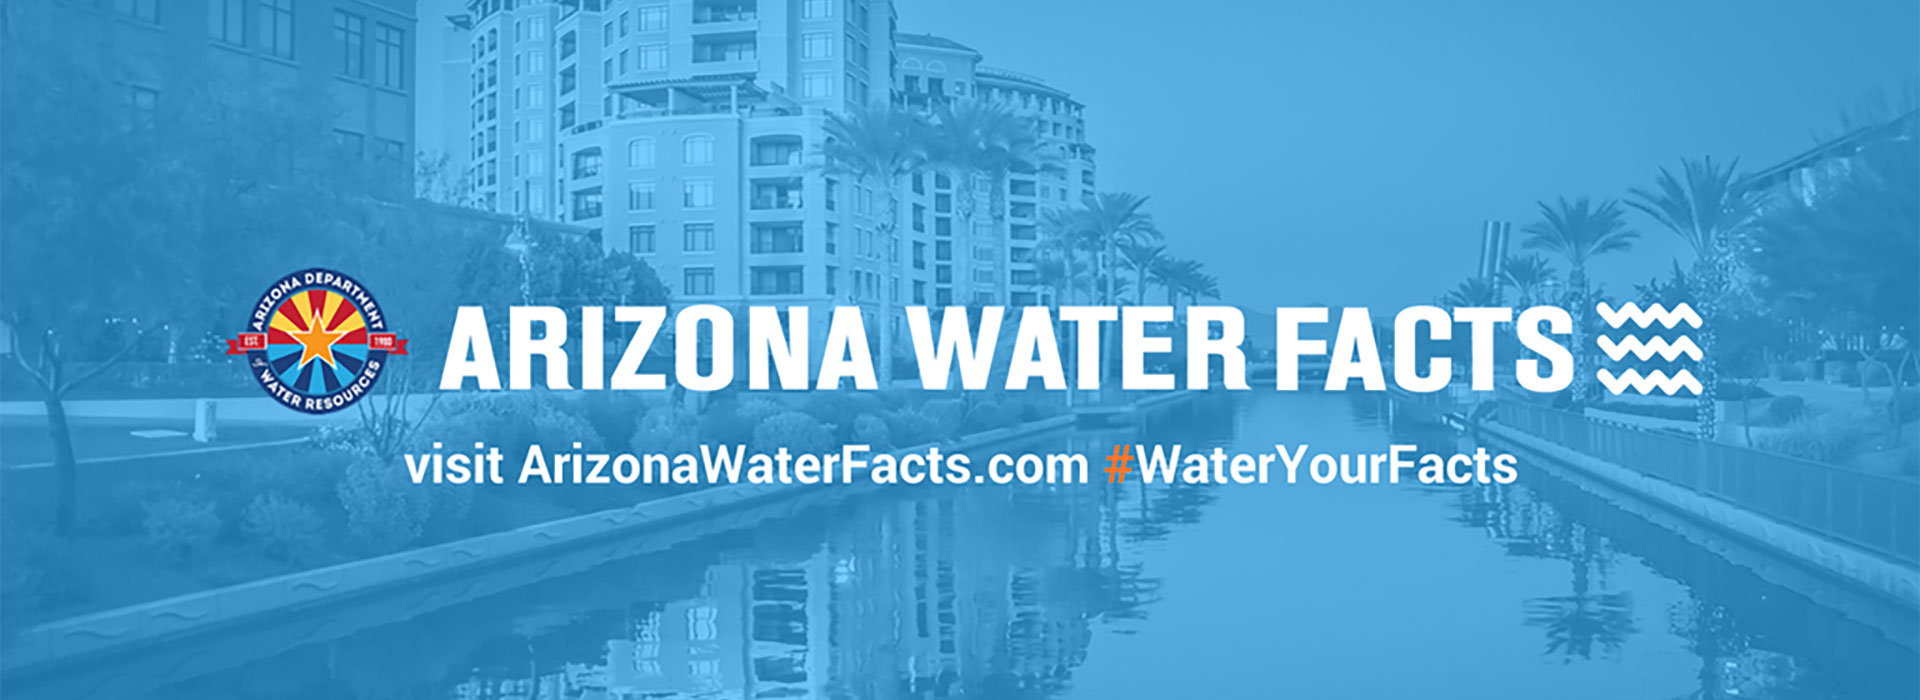 Arizona Water Facts